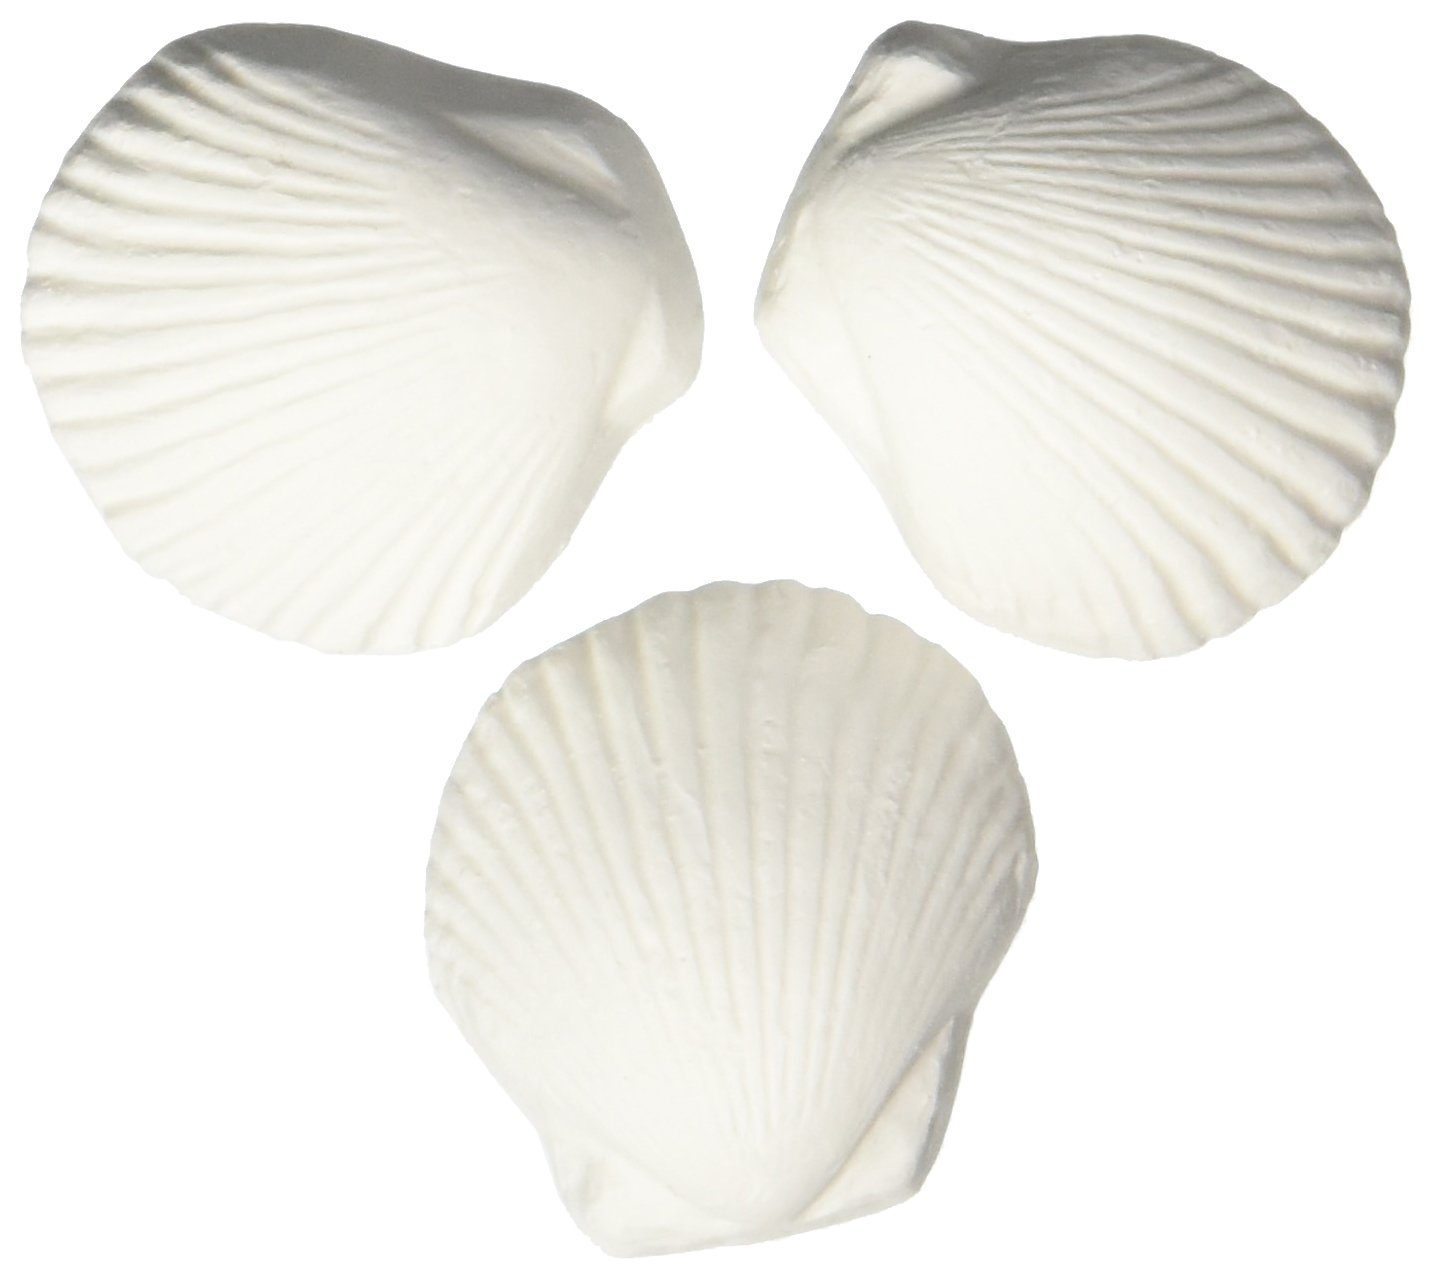 (2 Packages) Weco Wonder Shell Natural Minerals (3 Pack), Small - Total of 6 Shells Weco Products